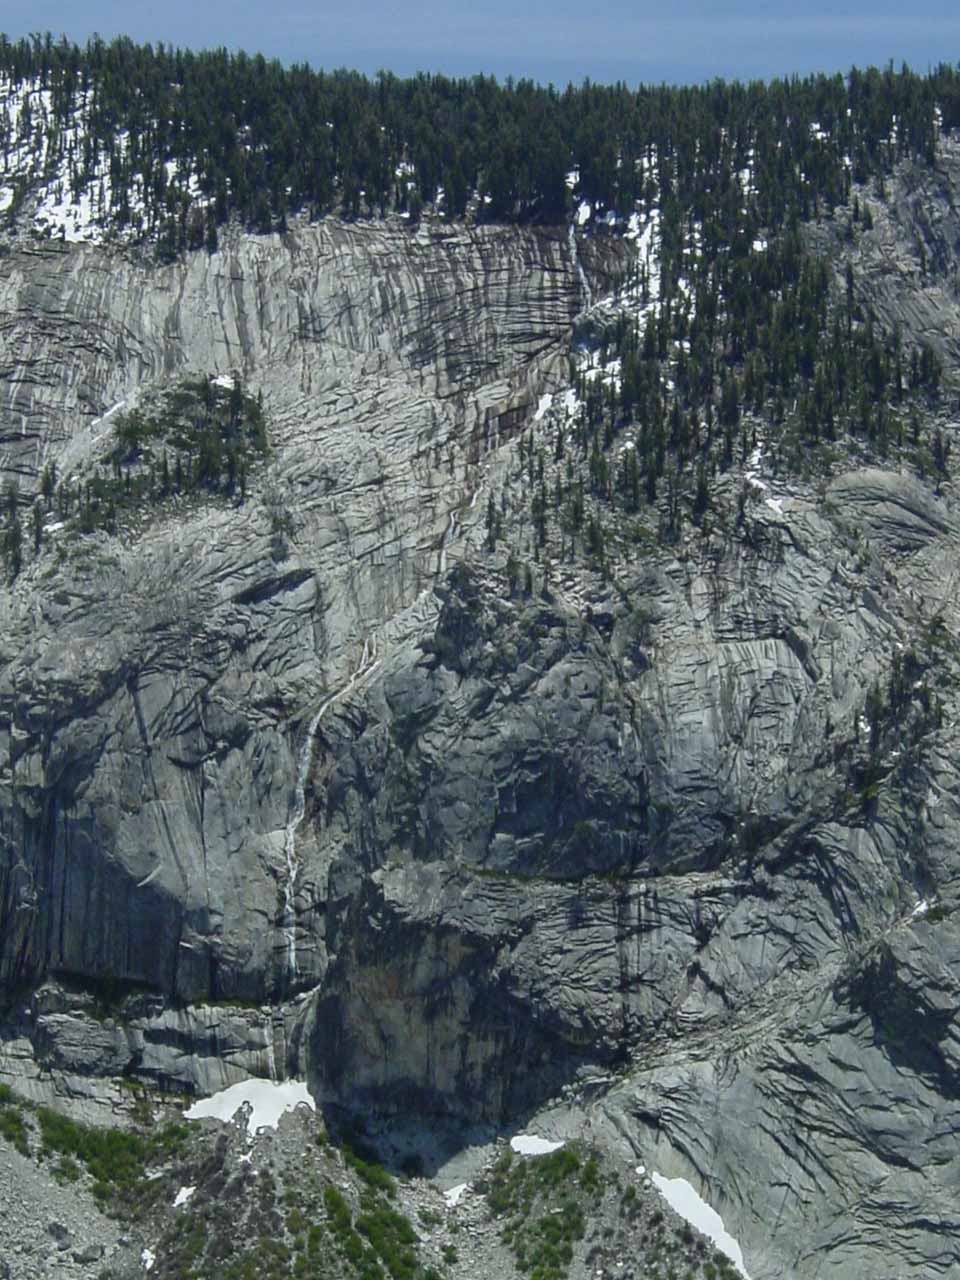 The thin, ephemeral waterfall spilling into the upper sections of Tenaya Canyon